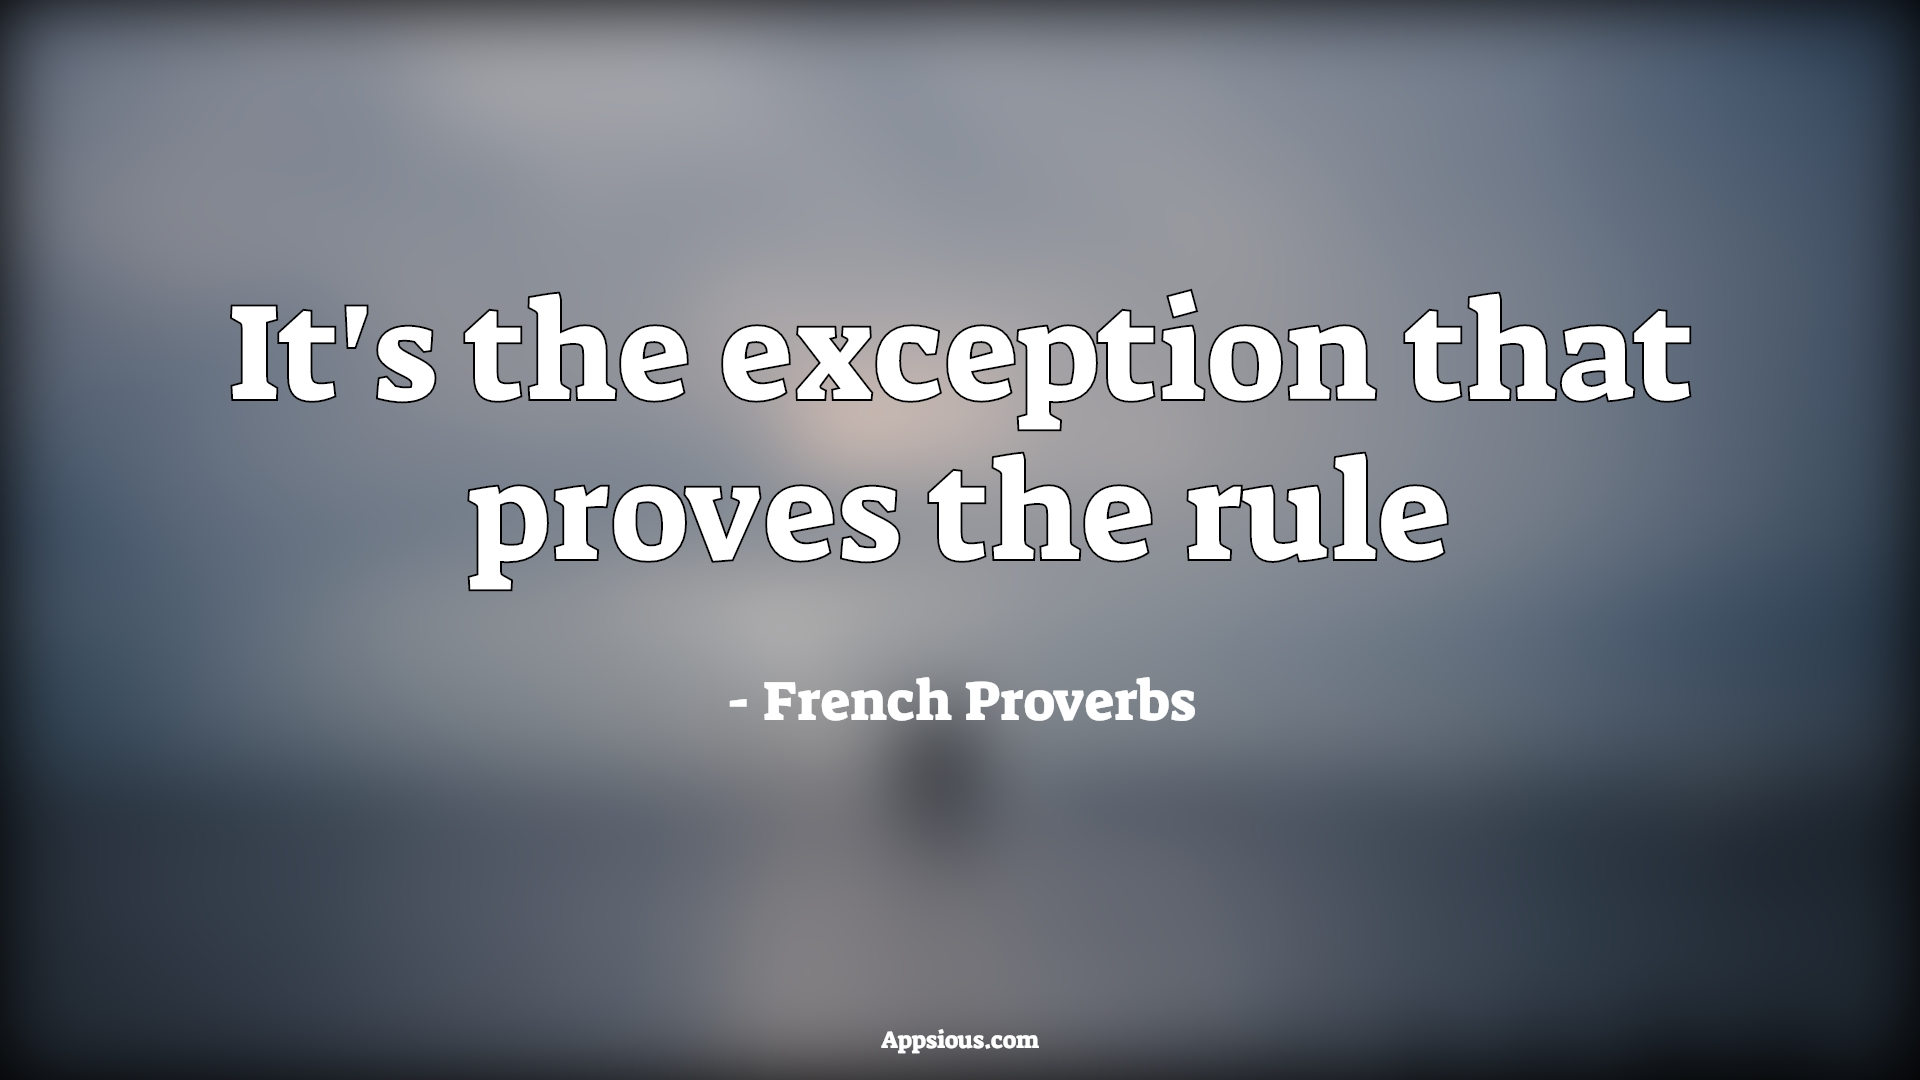 It's the exception that proves the rule